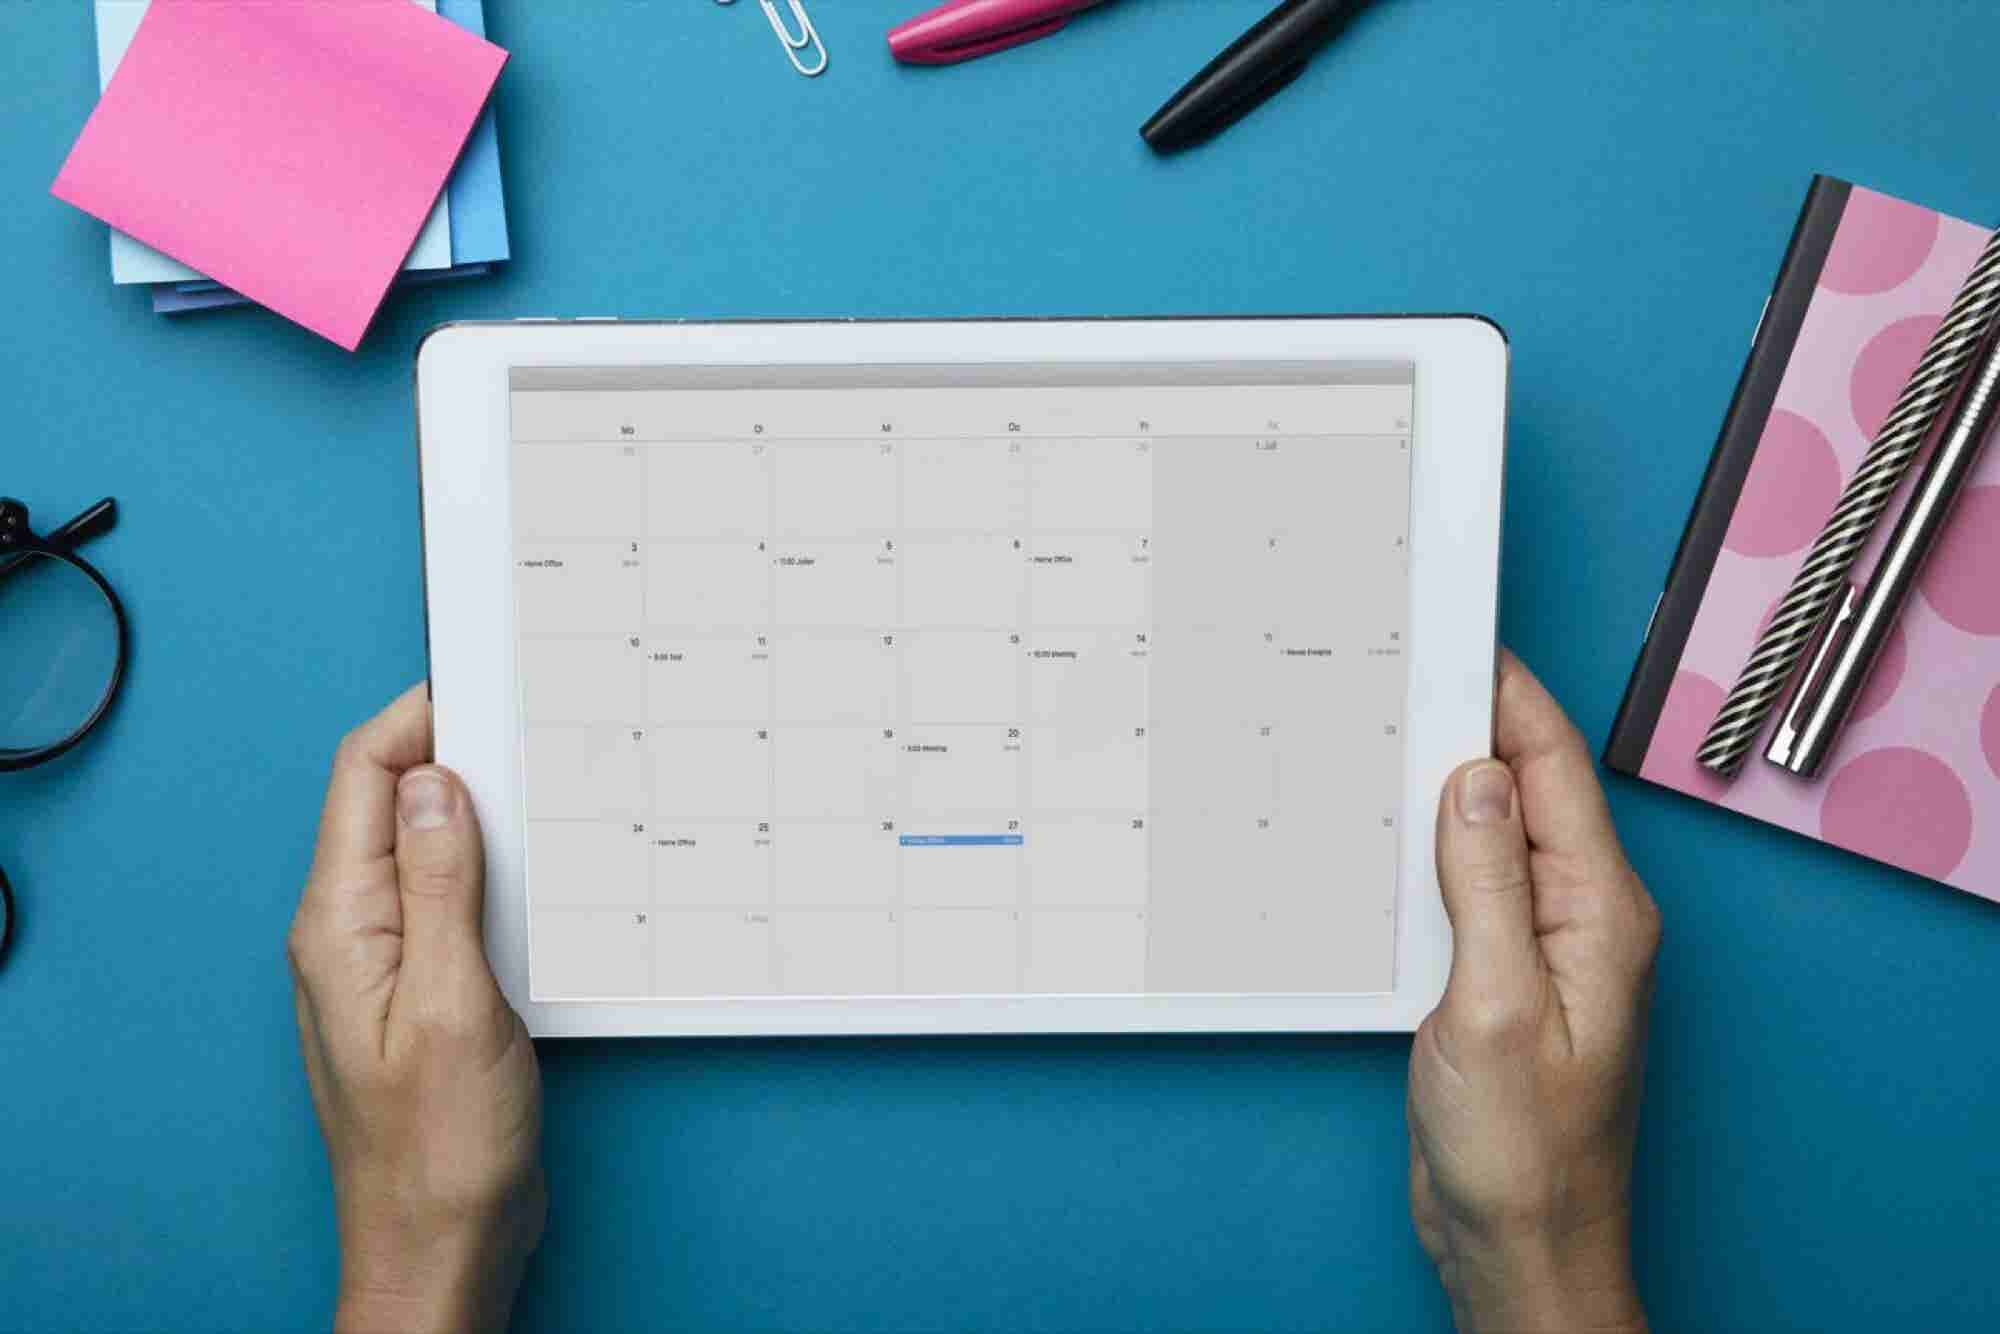 Unclog Your Calendar to Make Room for New Opportunities